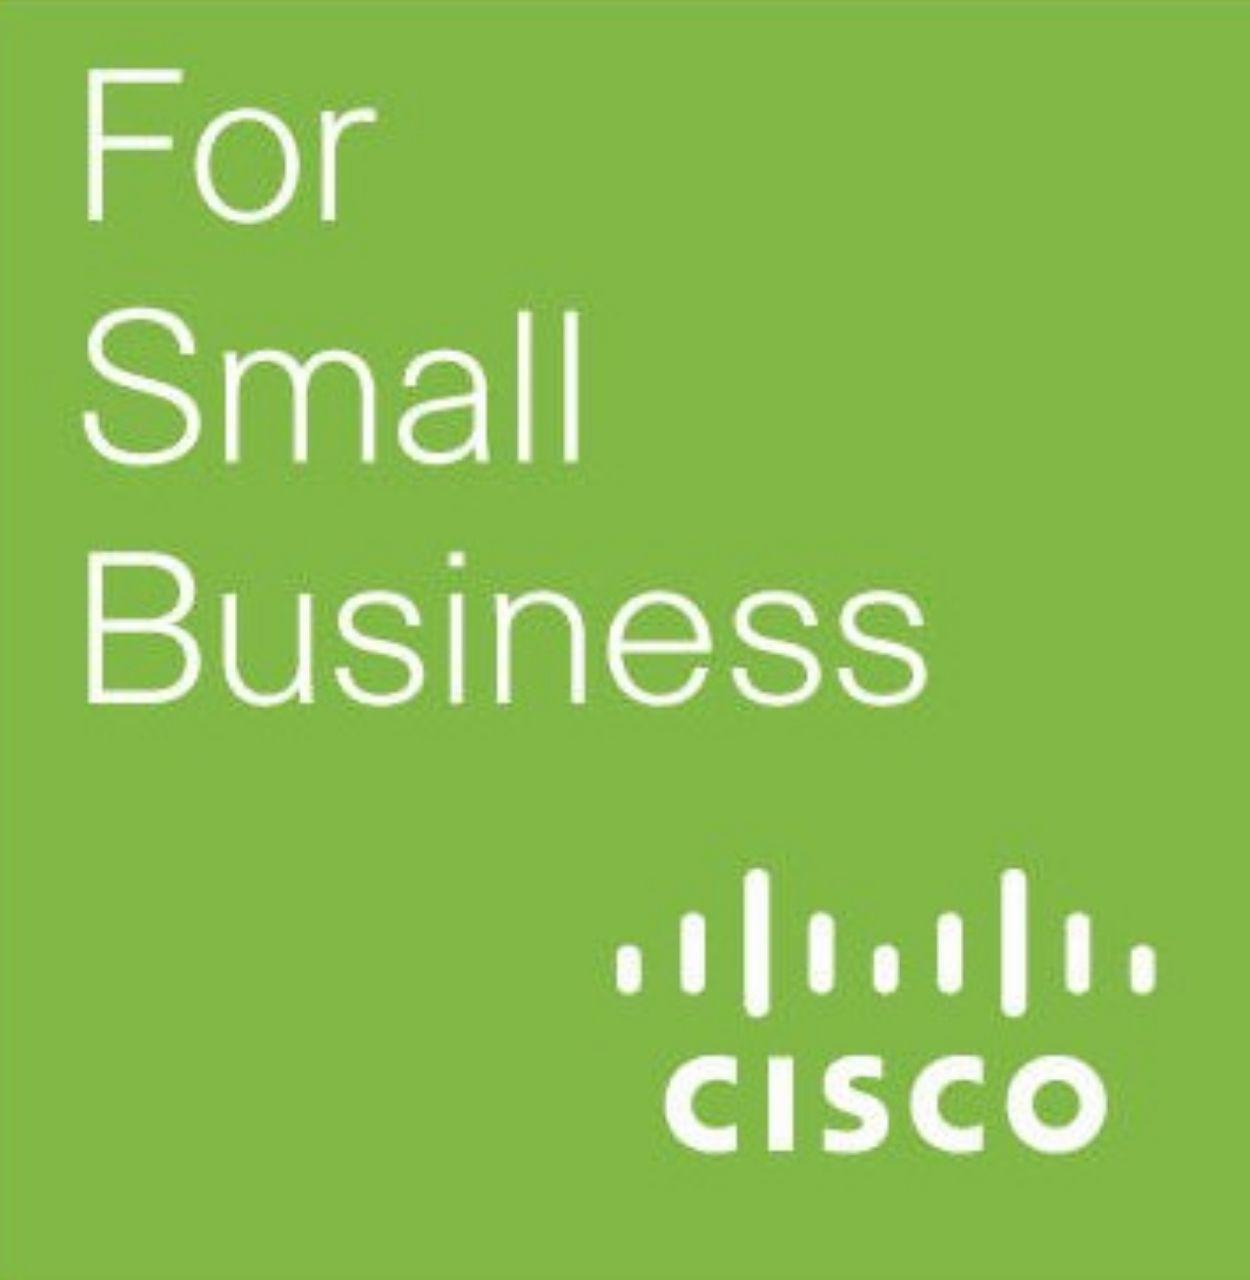 Cisco Small Business